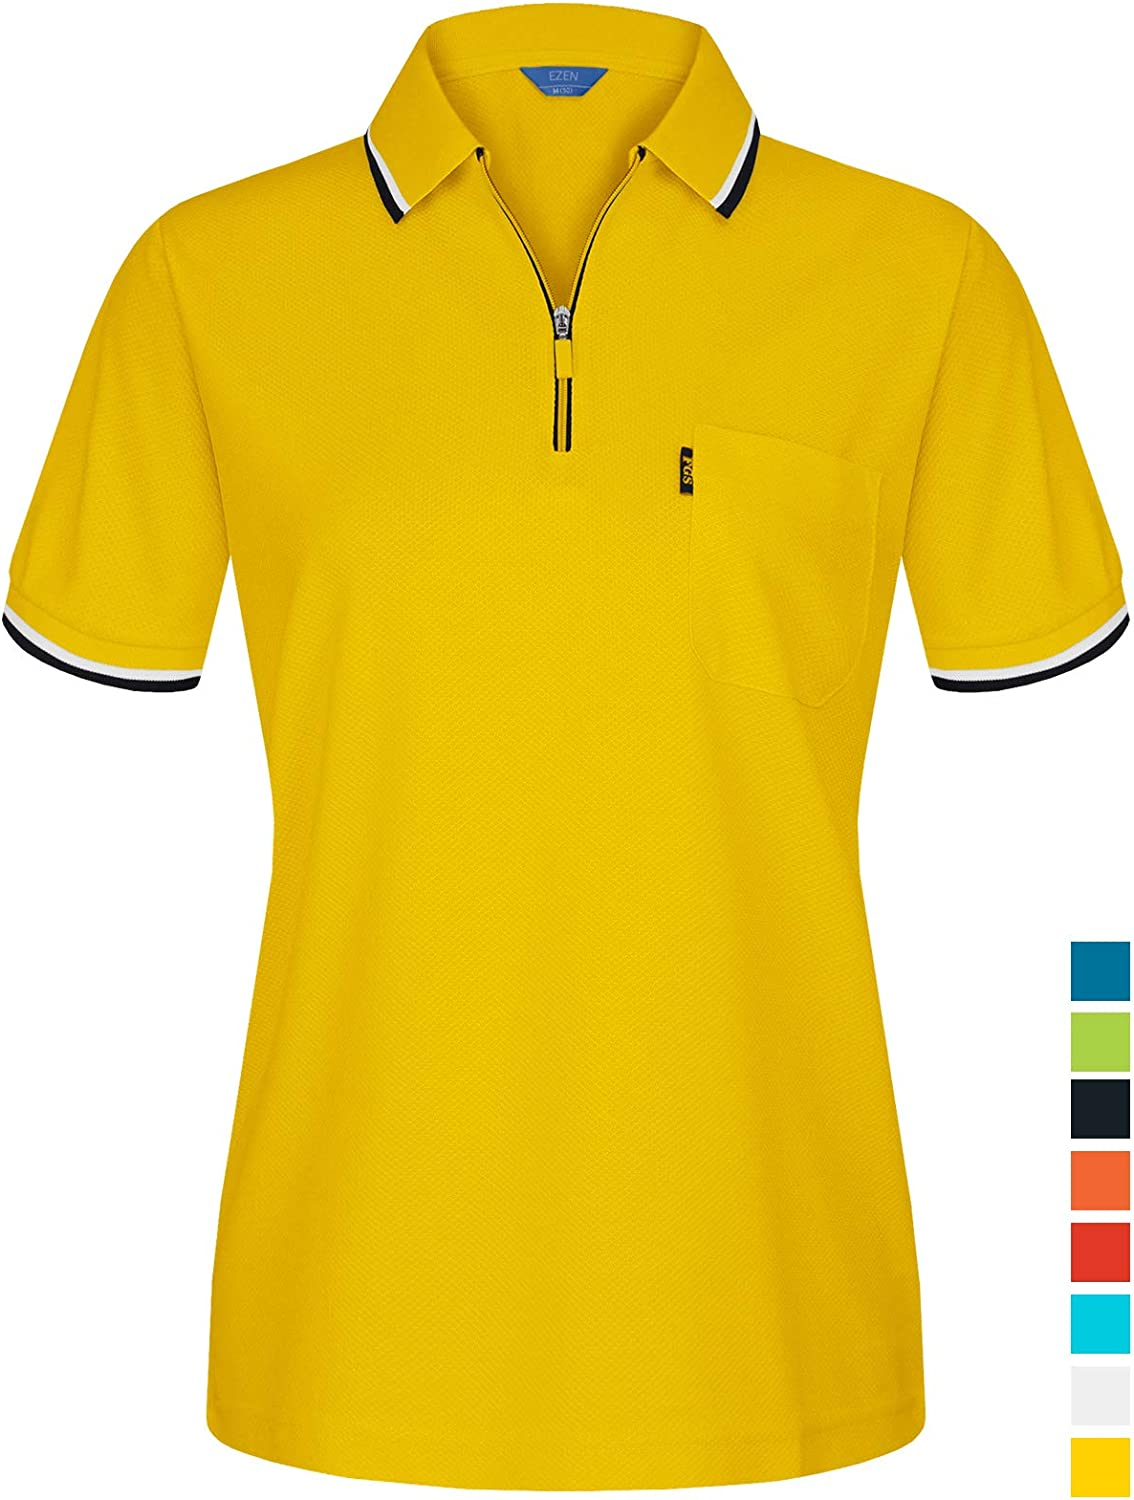 EZEN Women's & Ladies Light & Cool Comfort FIT Sporty Short Sleeve Polo Shirts